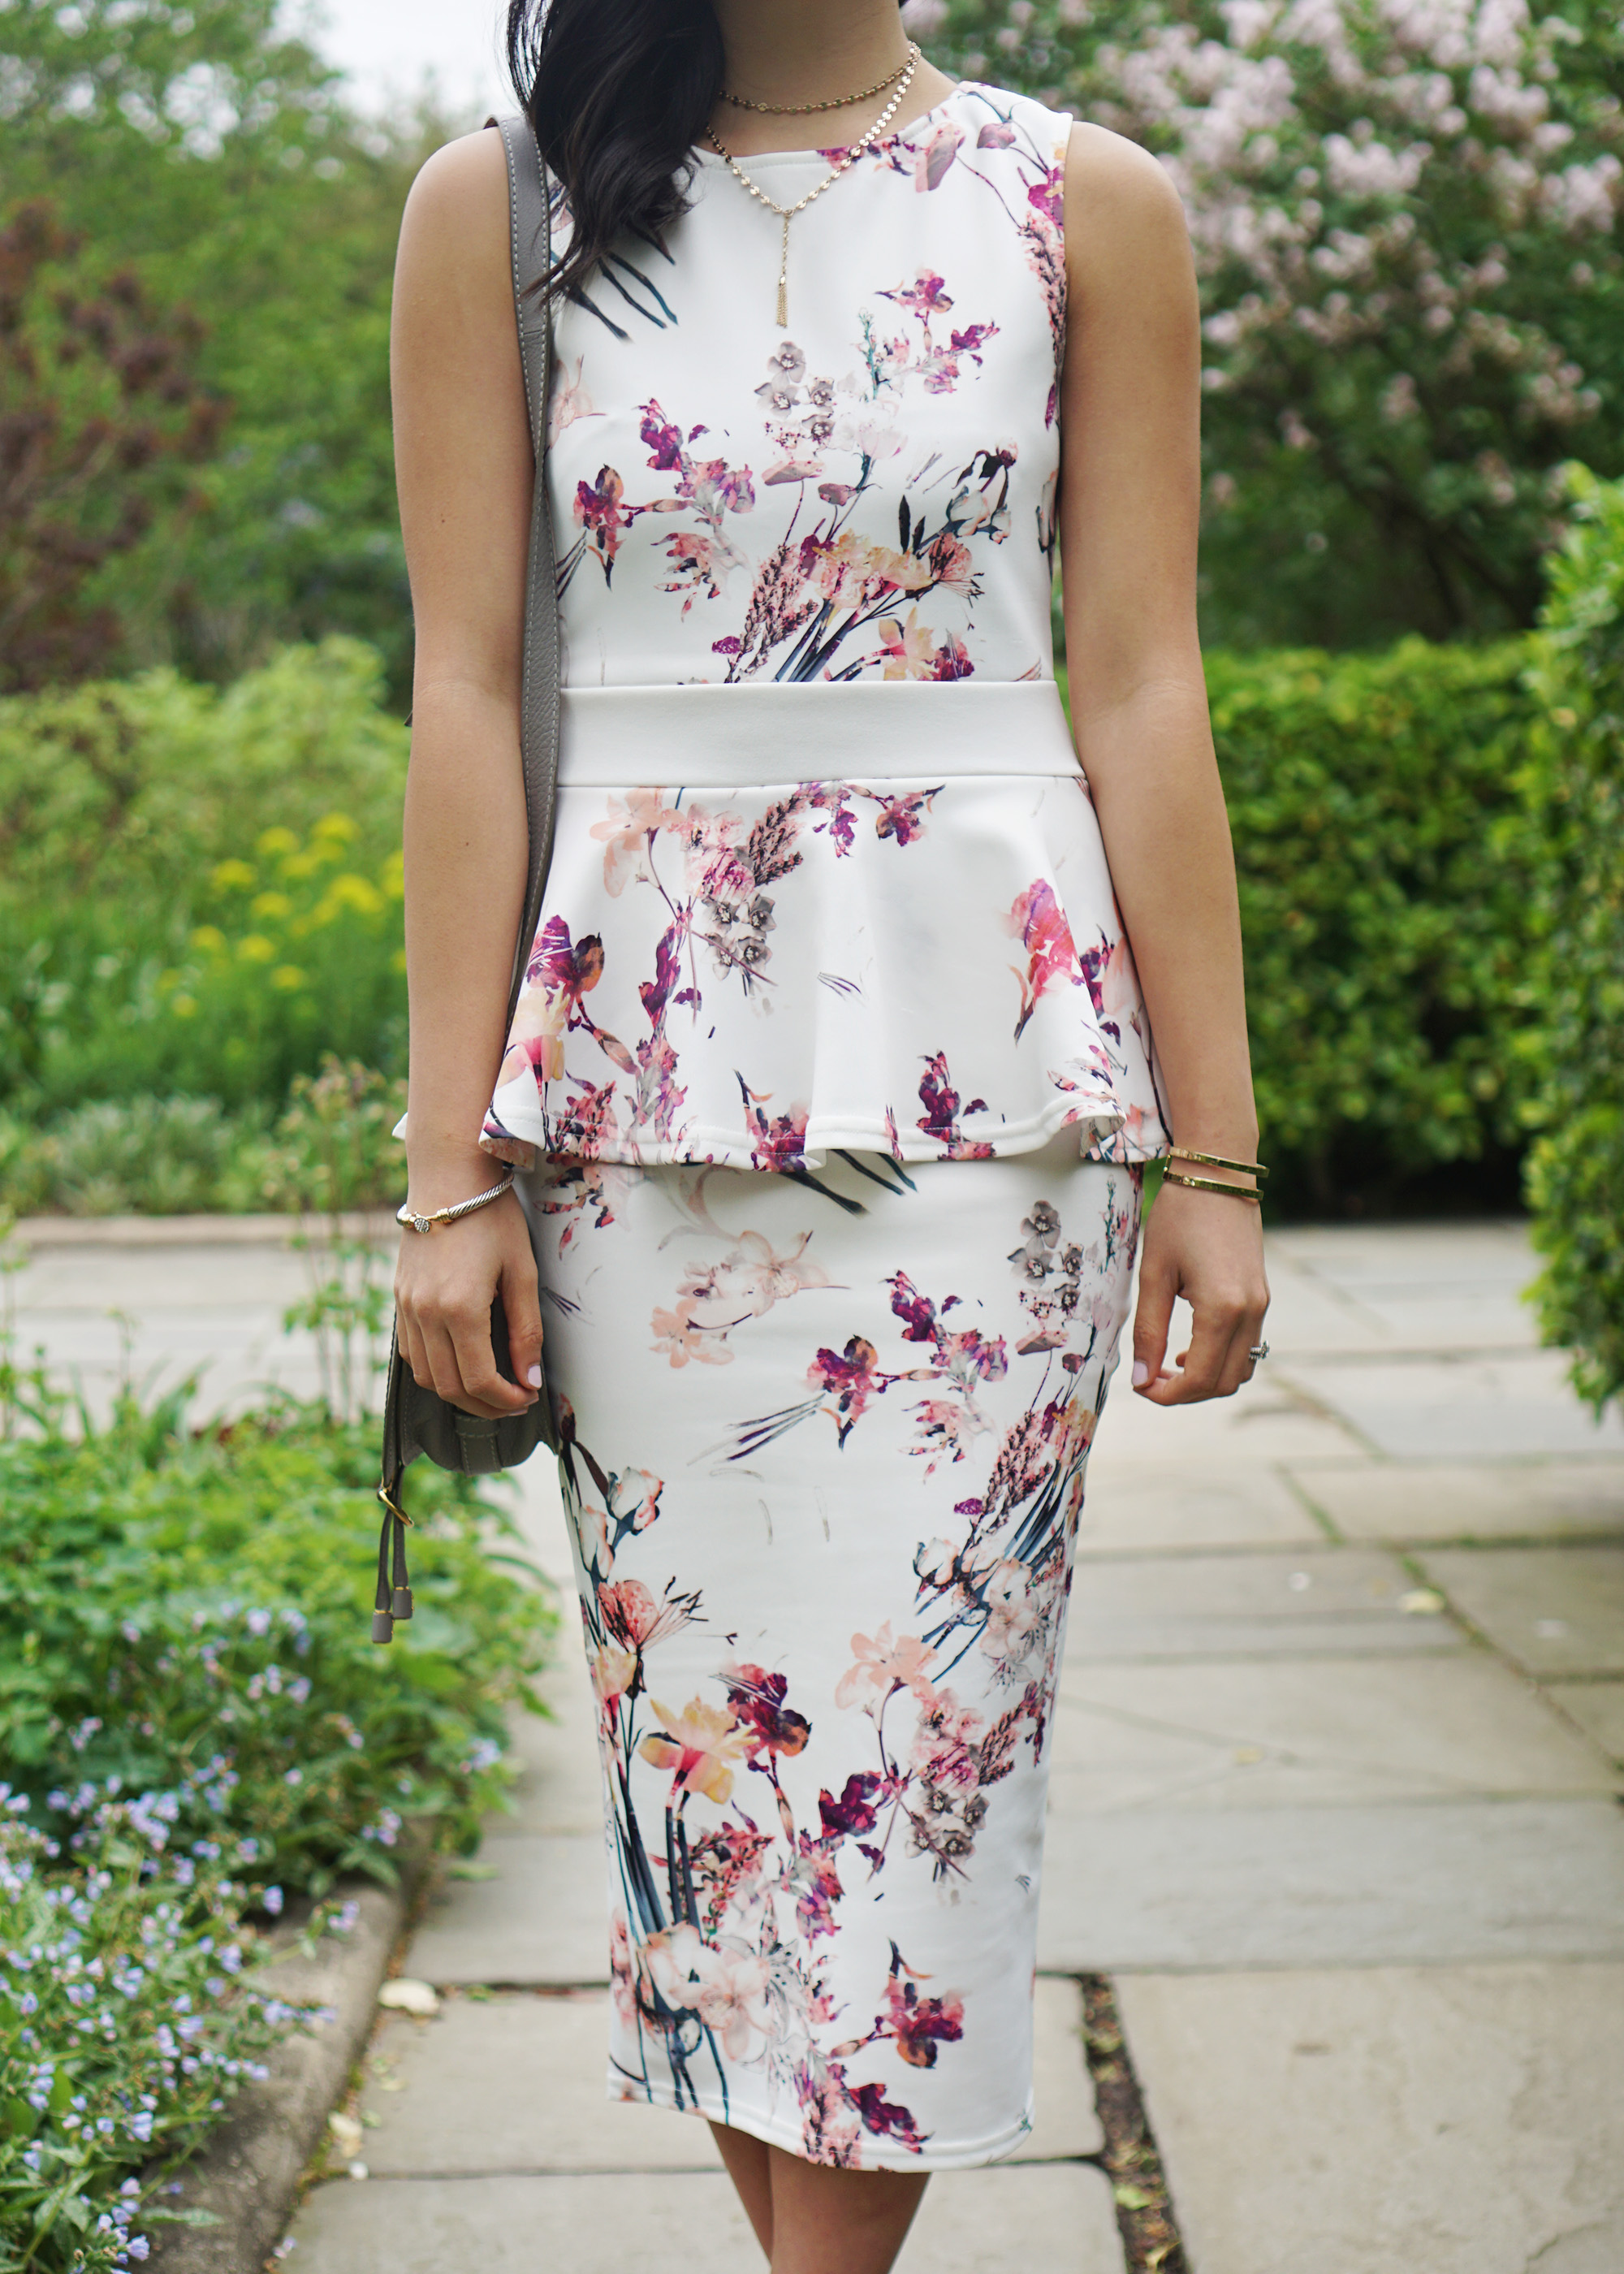 Skirt The Rules / Floral Peplum Dress